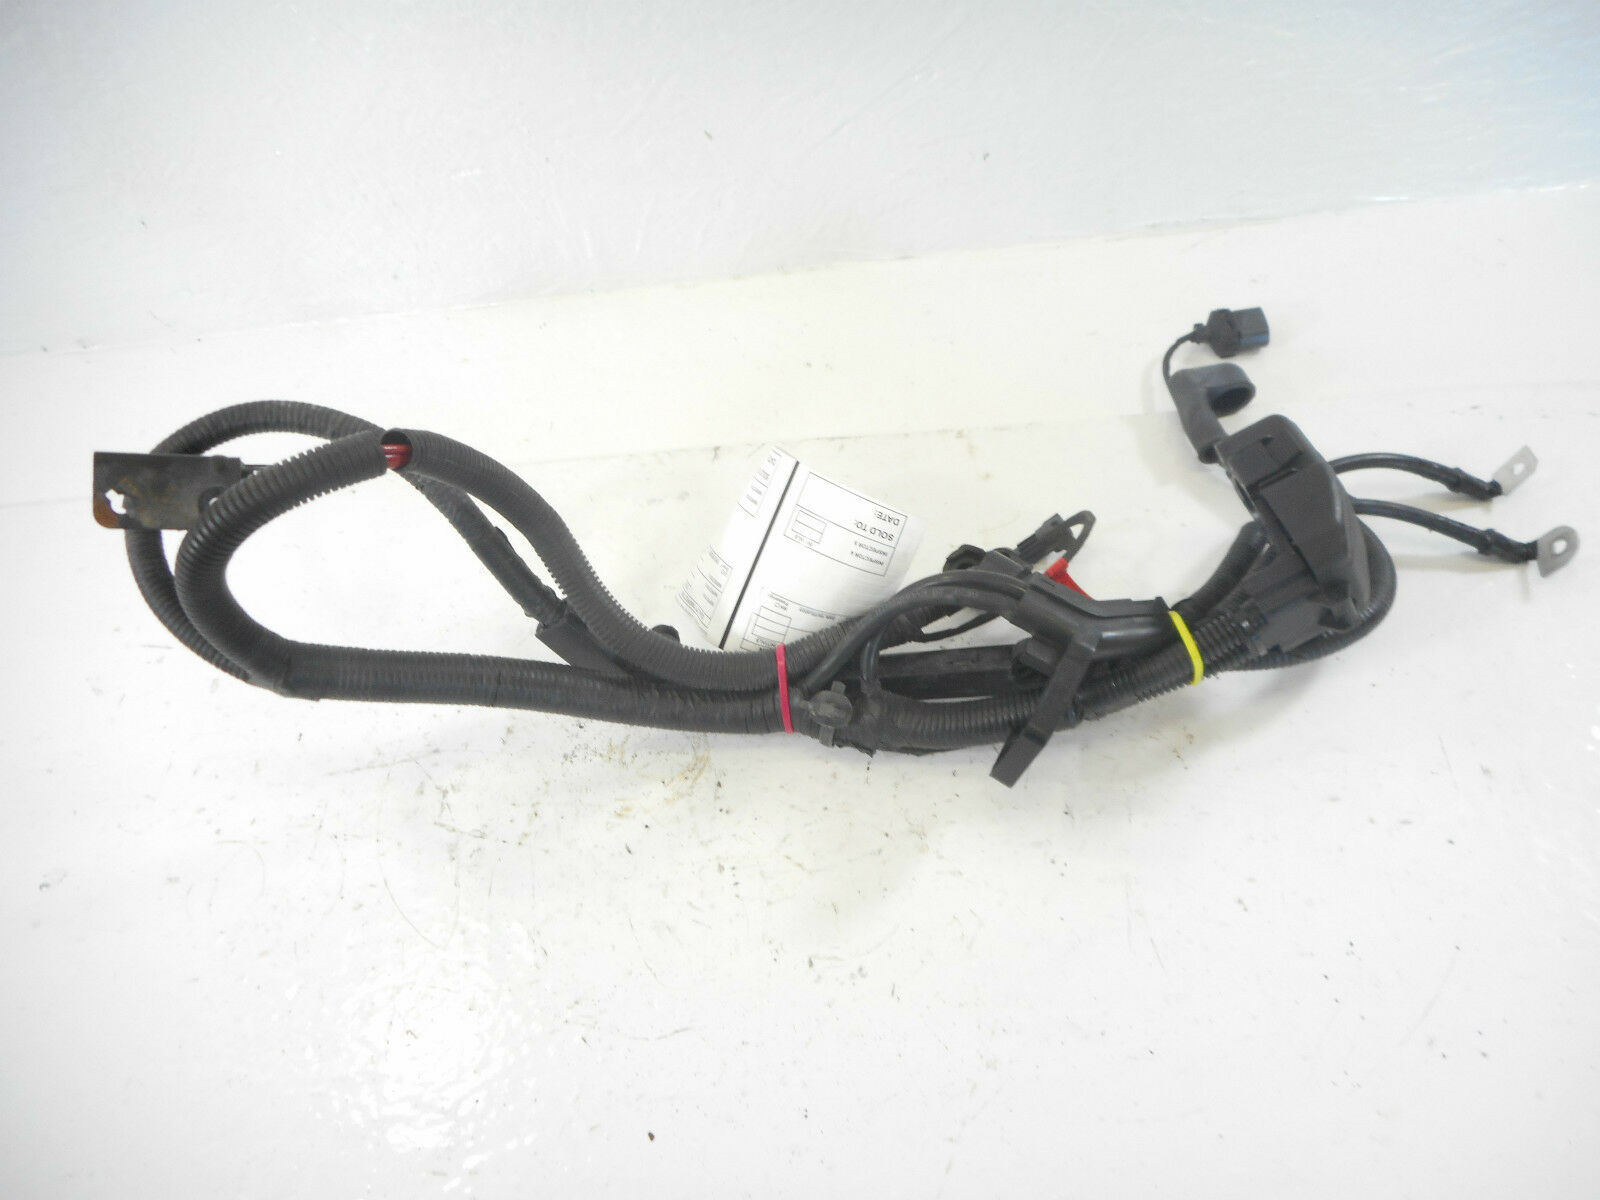 s l1600 2012 hyundai elantra hybrid 2 0l battery positive cable & wiring 2012 hyundai elantra wiring diagram at arjmand.co